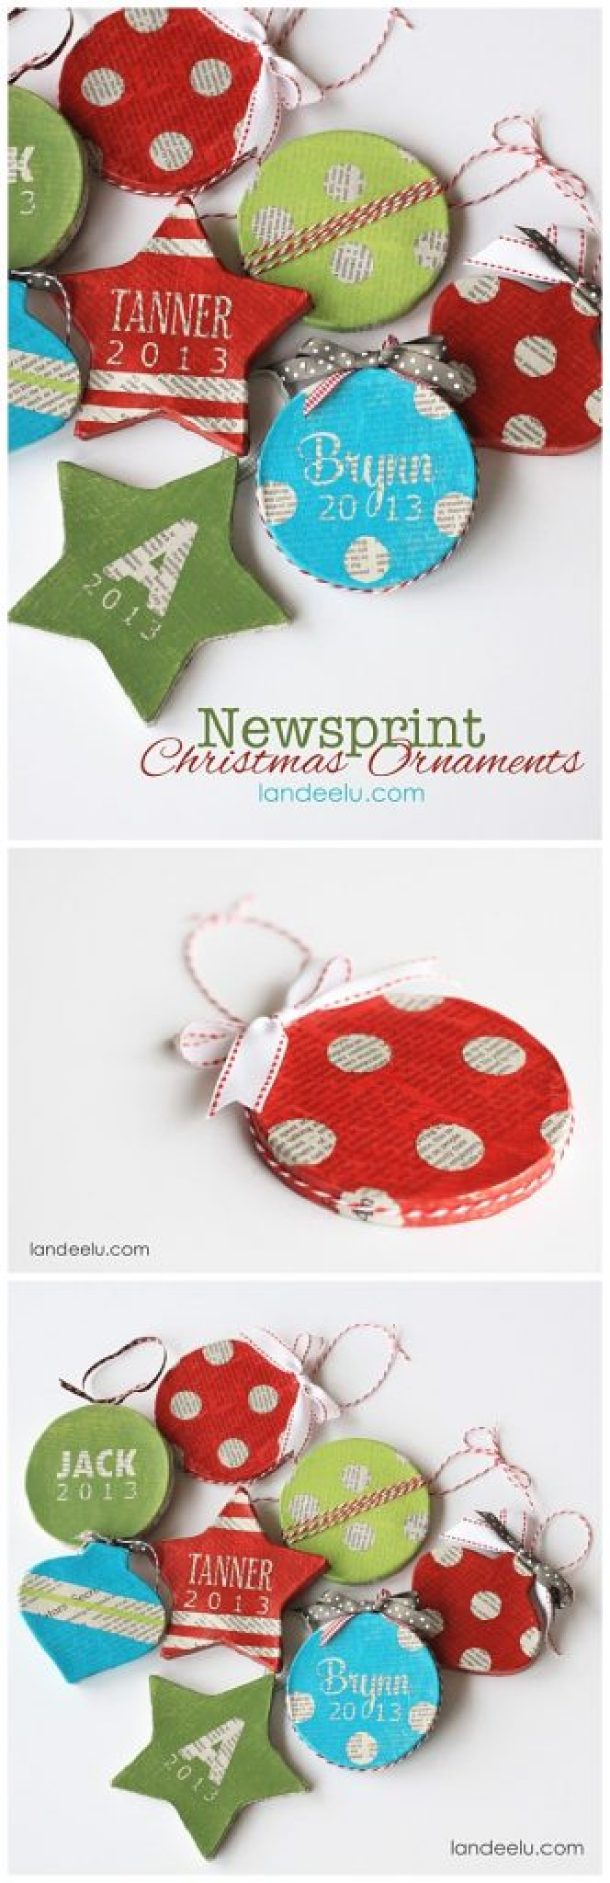 Grab some Mod Podge, newspaper and pretty colors of acrylic craft paint to make these EASY DIY Newsprint Ornaments! | Landeelu